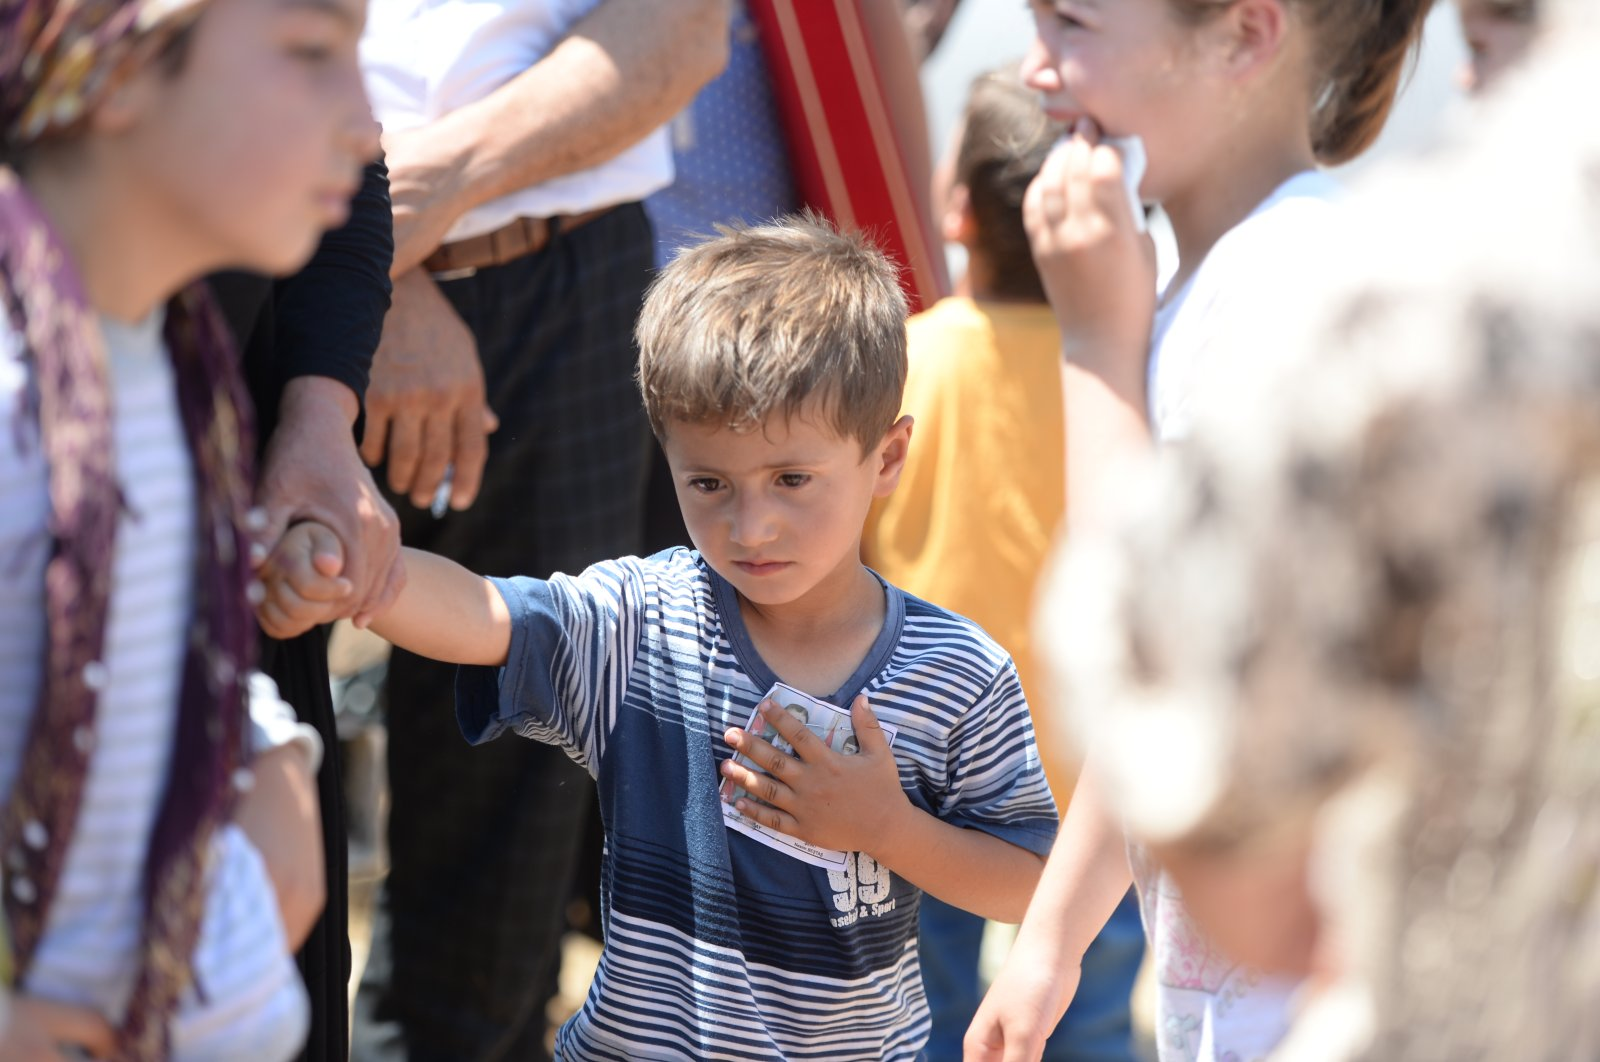 4-years-old child of Hacı Atilla, one of the four victims of the Wednesday's PKK terrorist attack took place in Şırnak, holds the picture of his father during Atilla's funeral, June 18, 2020. (AA)